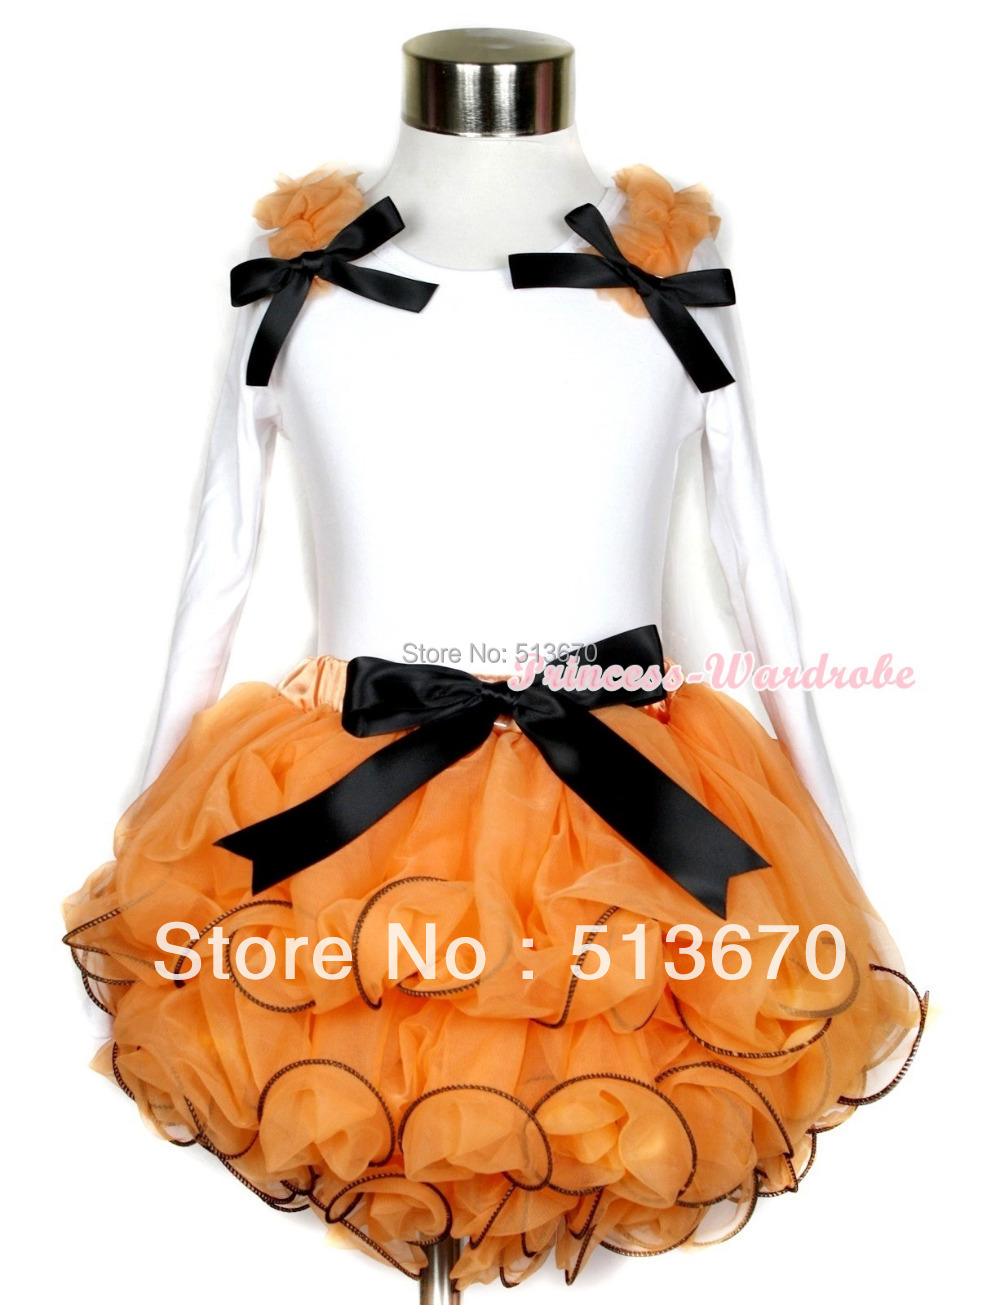 Halloween Orange Petal Pettiskirt with Matching White Long Sleeve Top with Orange Ruffles & Black Bow MAMW258